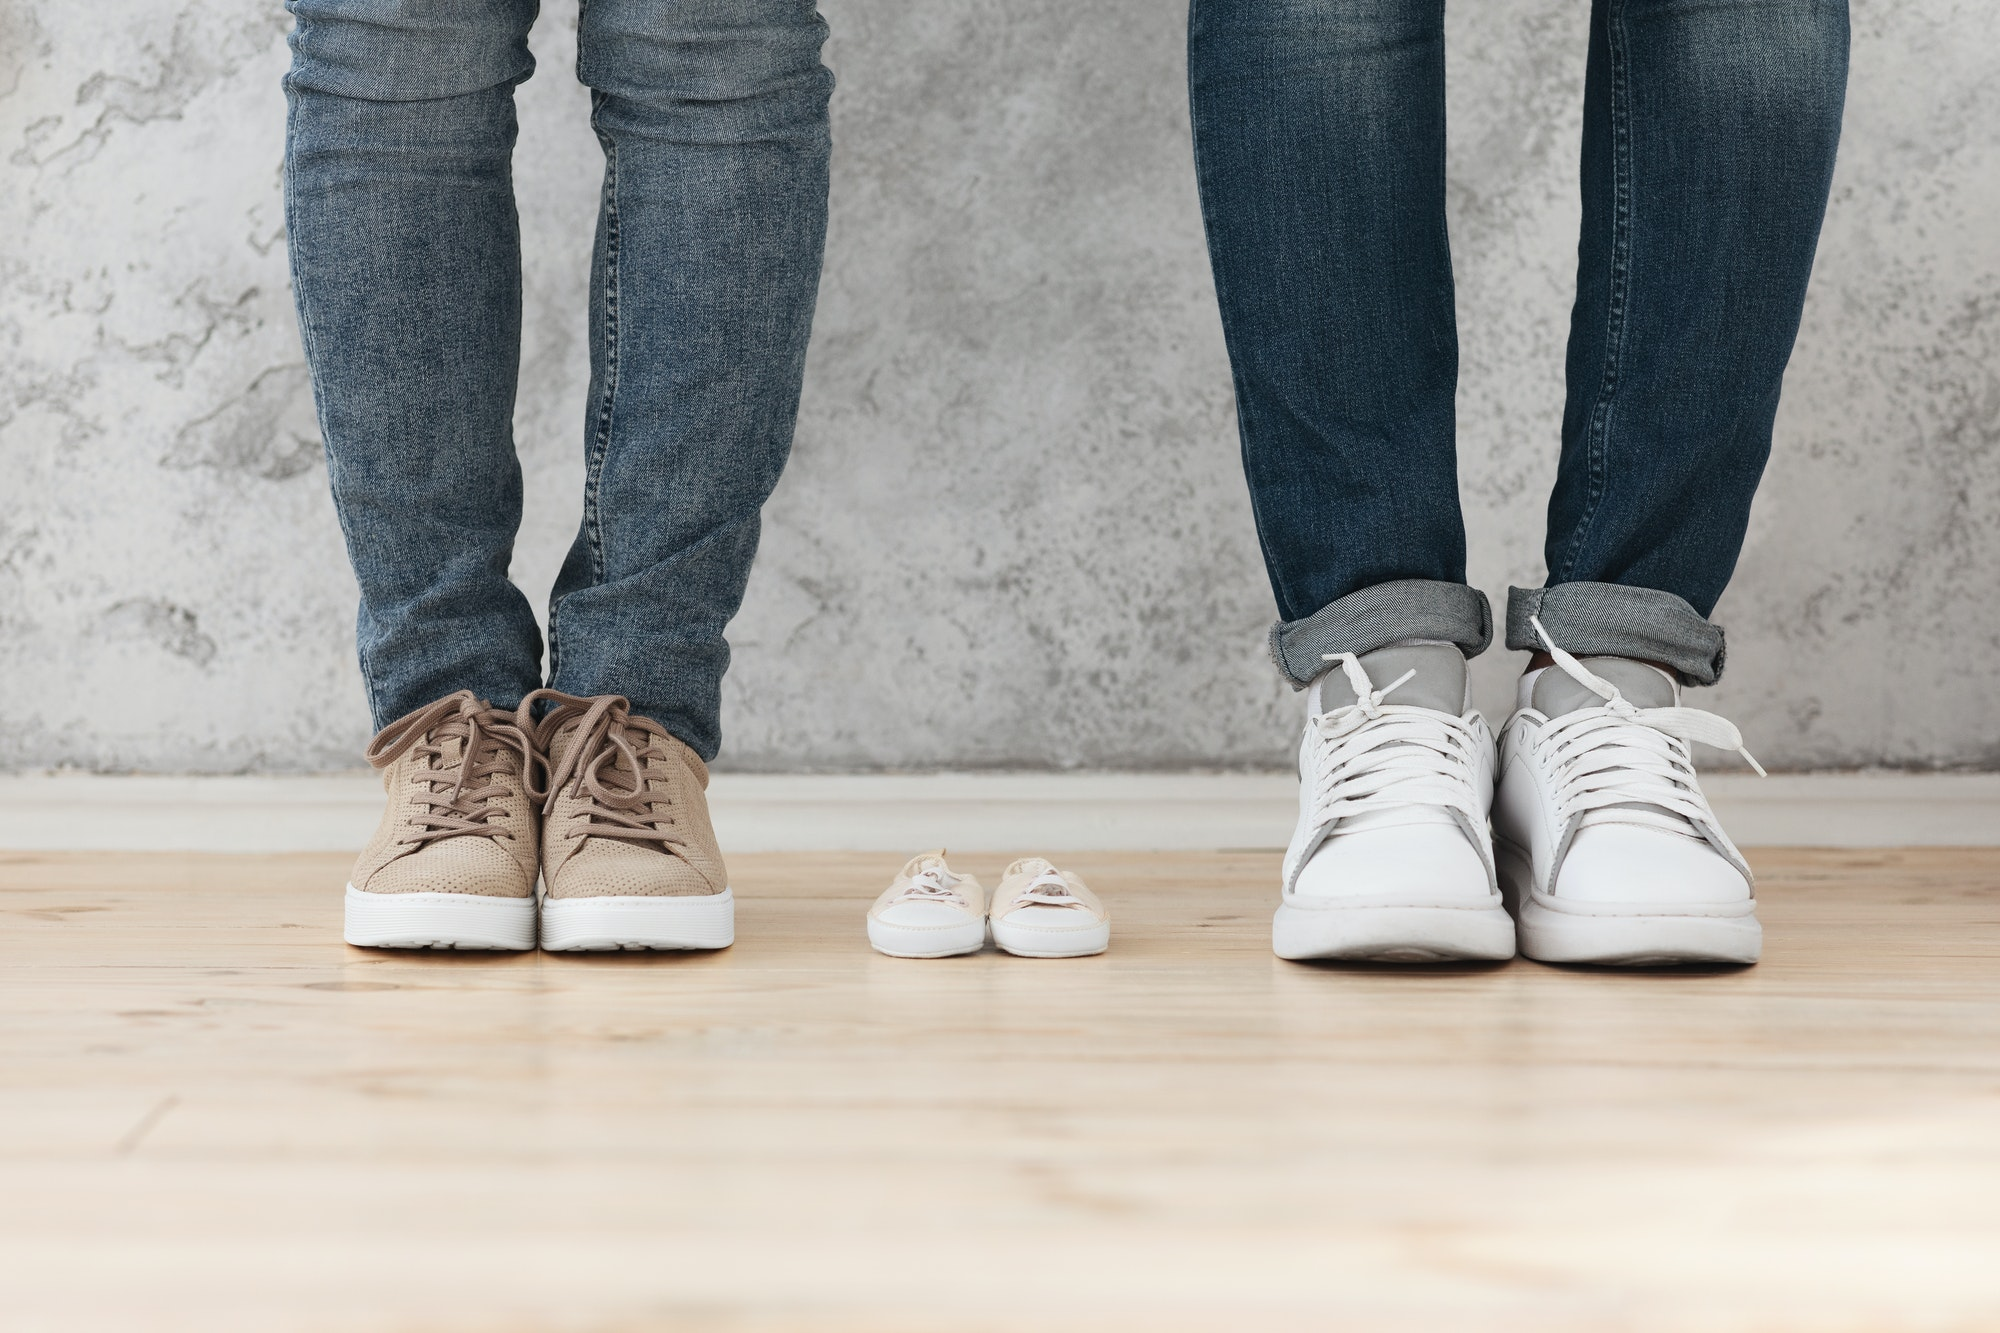 Man and woman standing next to small baby shoes